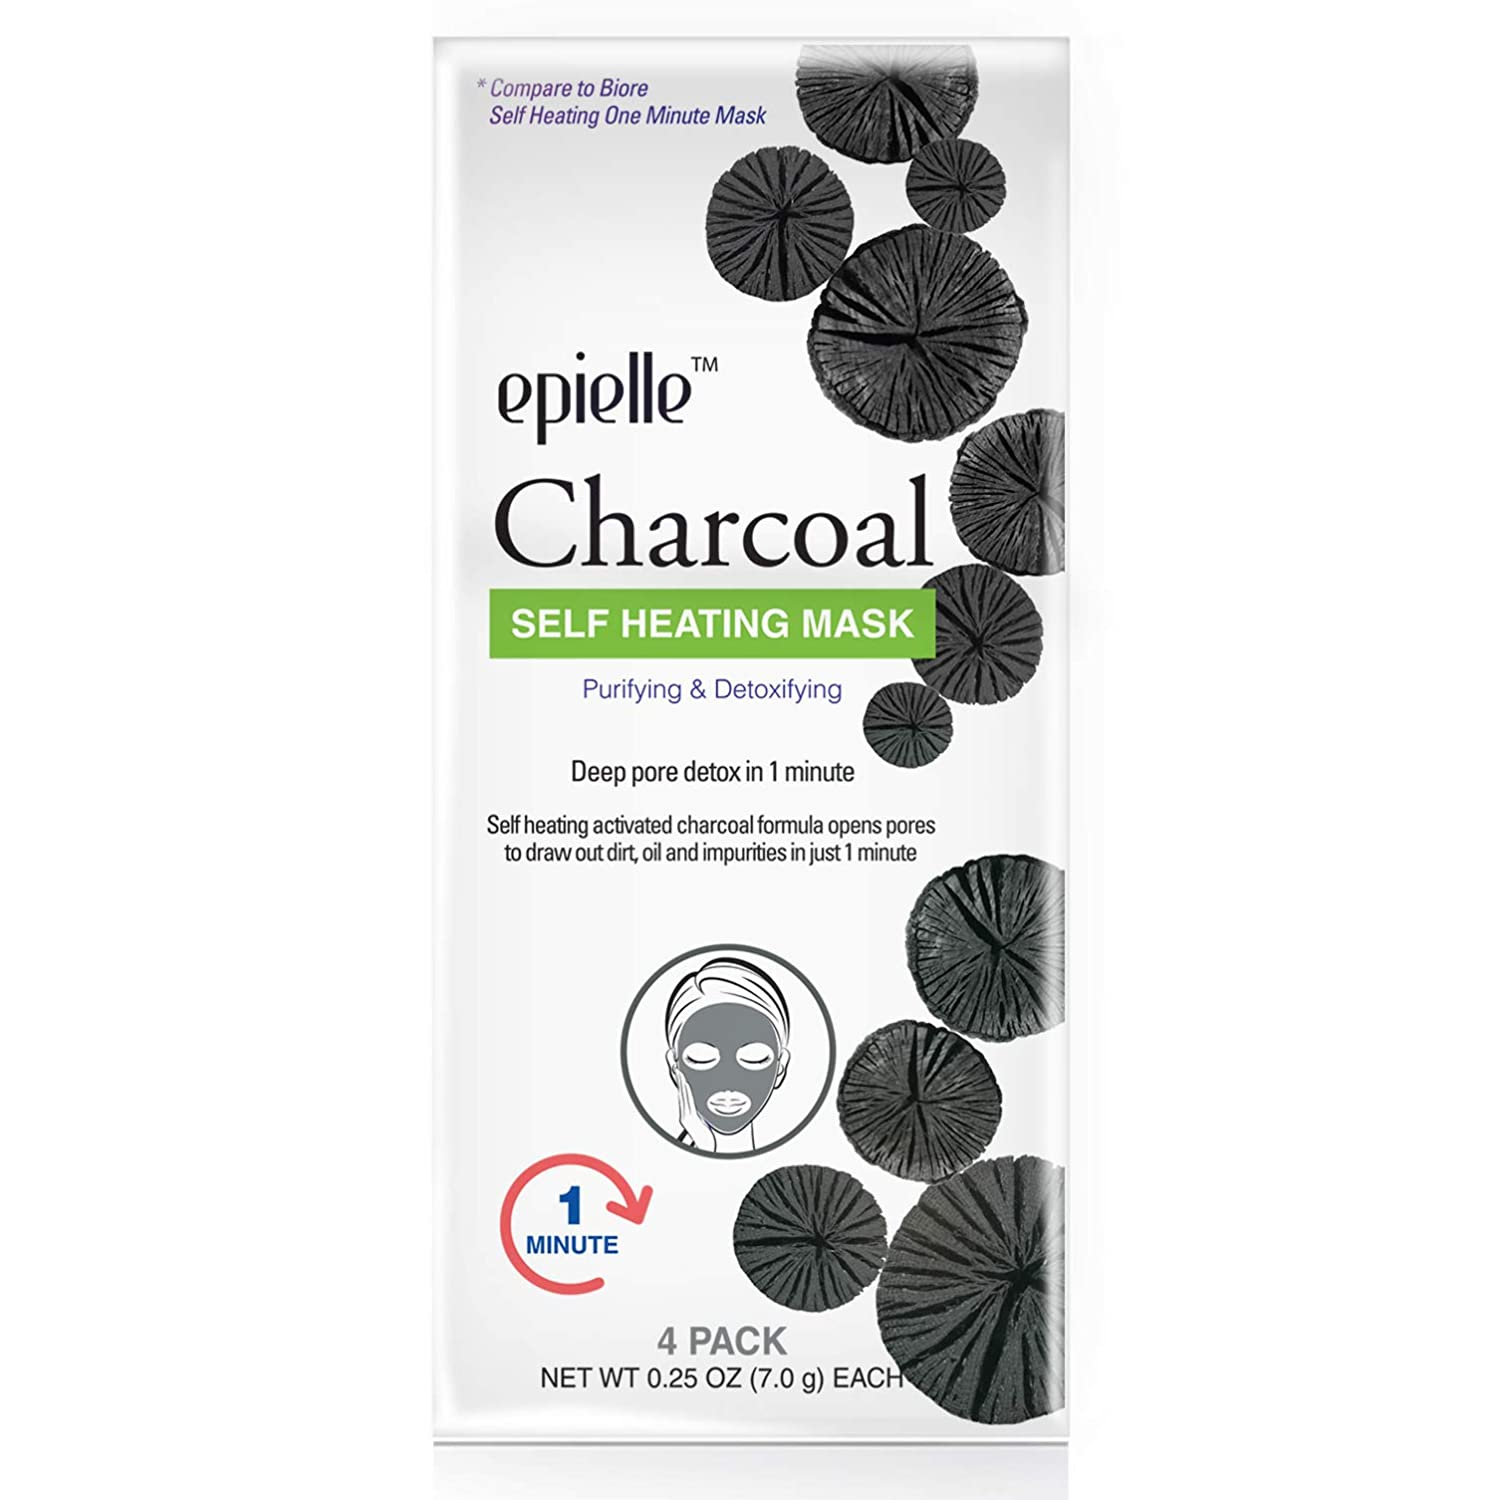 Epielle Charcoal Self Heating mask, 4ct (1 pack)